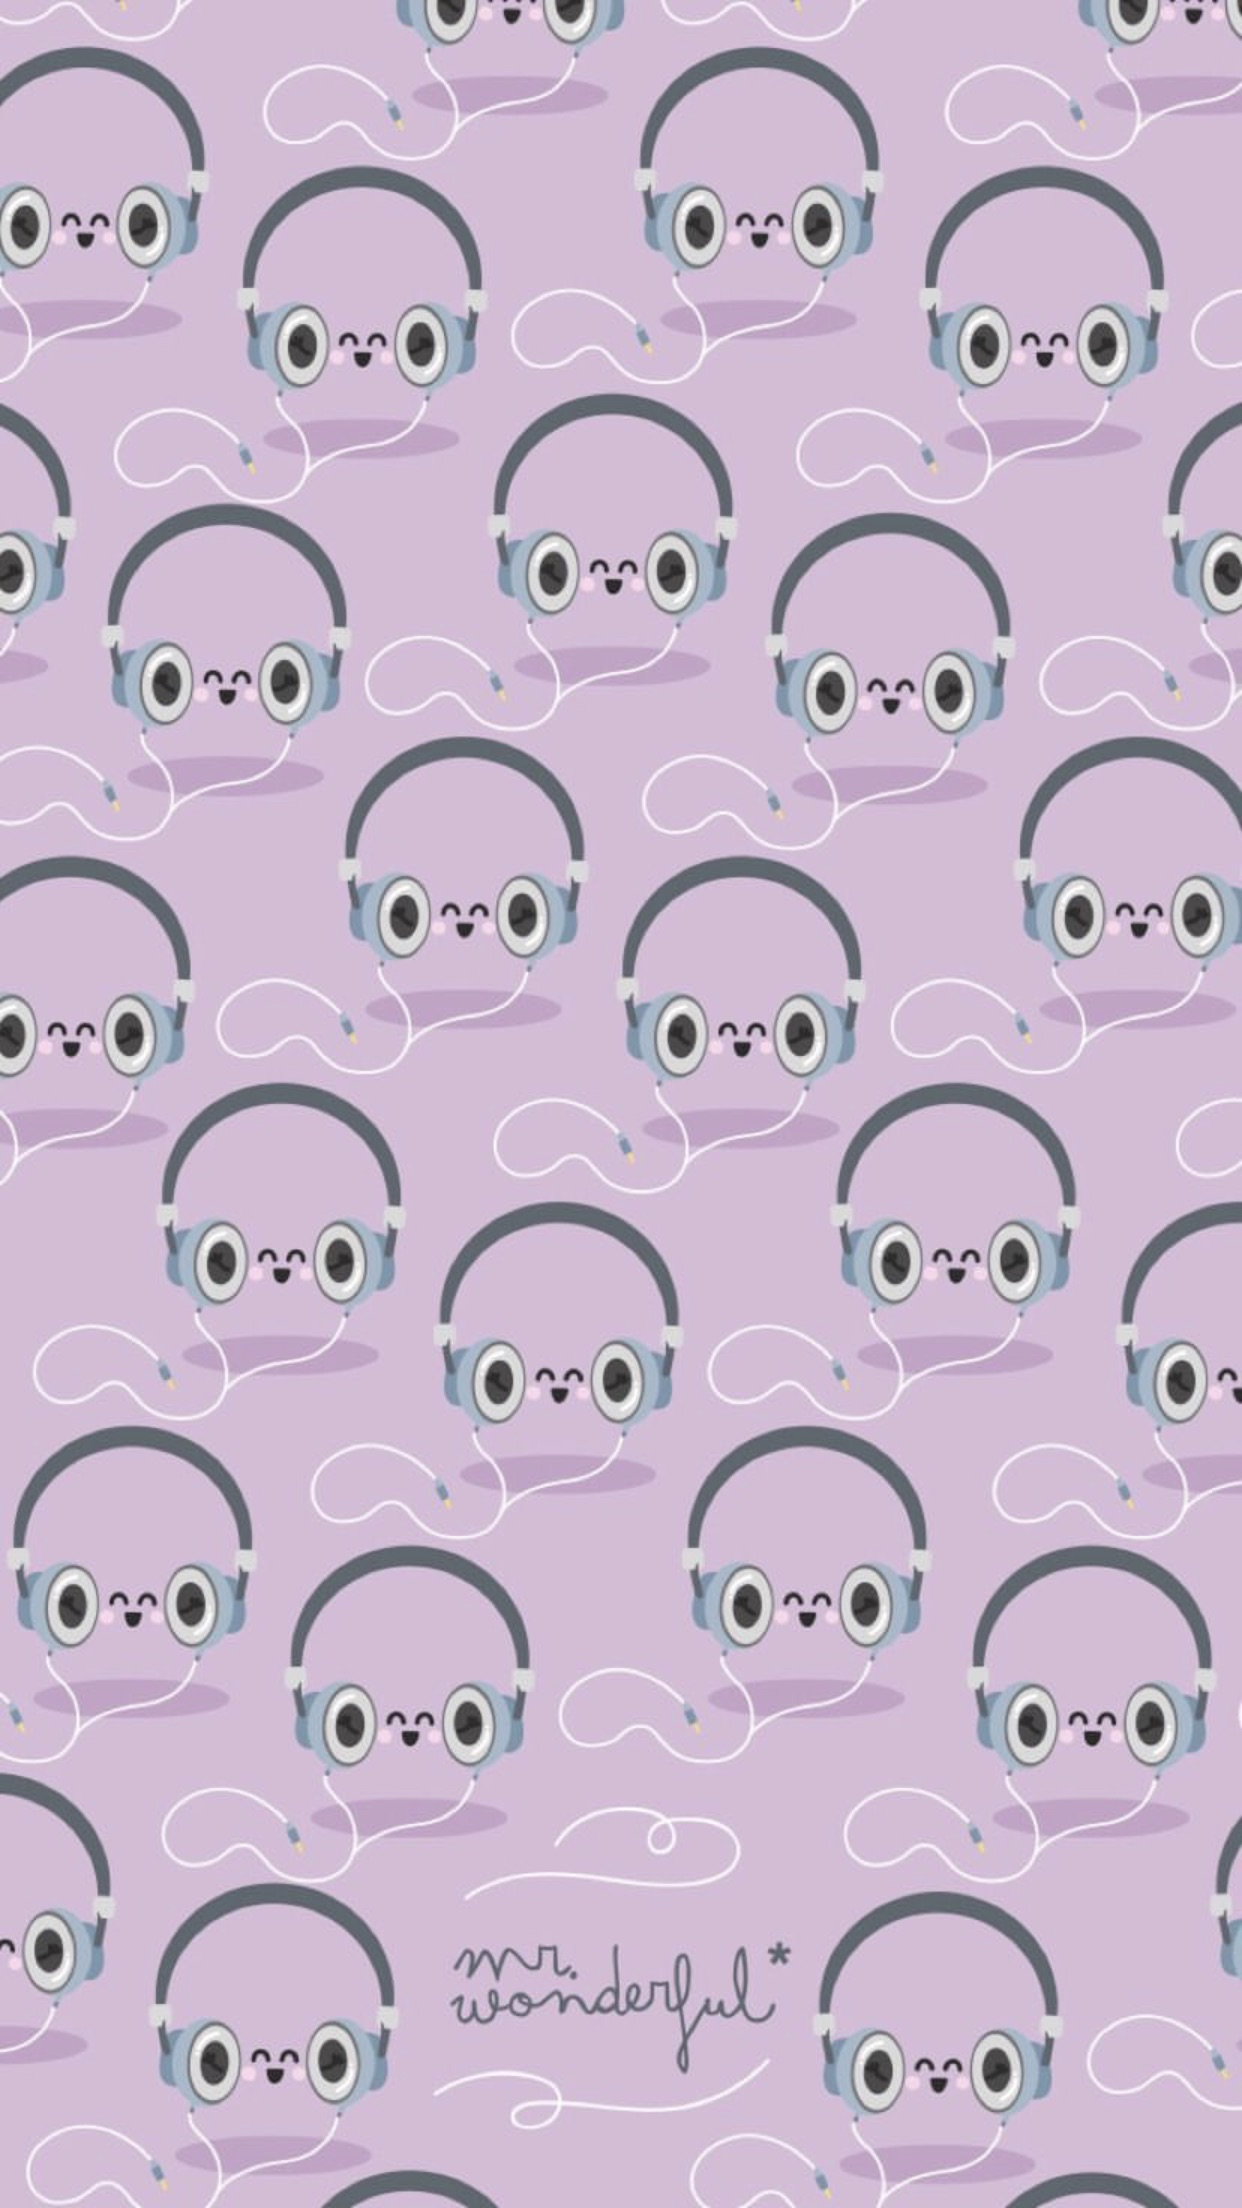 fondos de pantalla, fondo de pantalla, fondo de pantalla divertido, fondo de pantalla femenino, girly backgrounds, cool background, colorful backfround, fondo de pantalla patron, pattern, fondo de pantalla audifonos, earphone background.